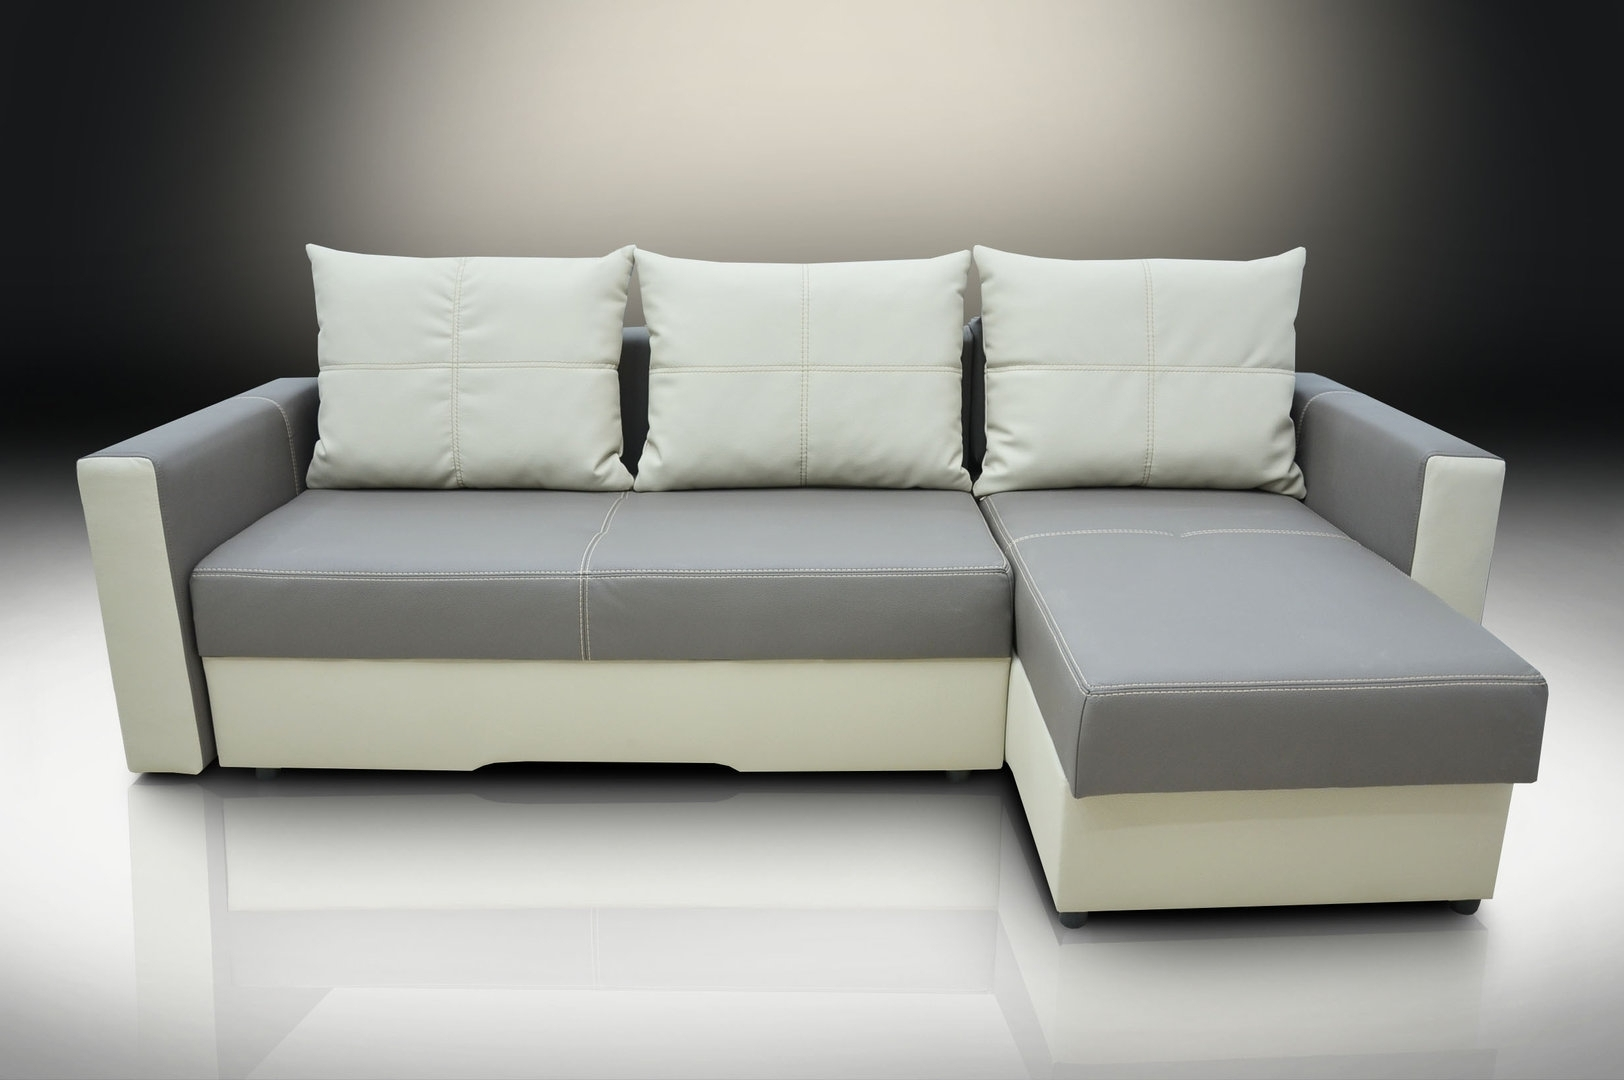 Bonded Leather Corner Sofa Bed Bristol Elephanttoffee With Fresh Within Corner Sofa Bed Sale (View 10 of 15)